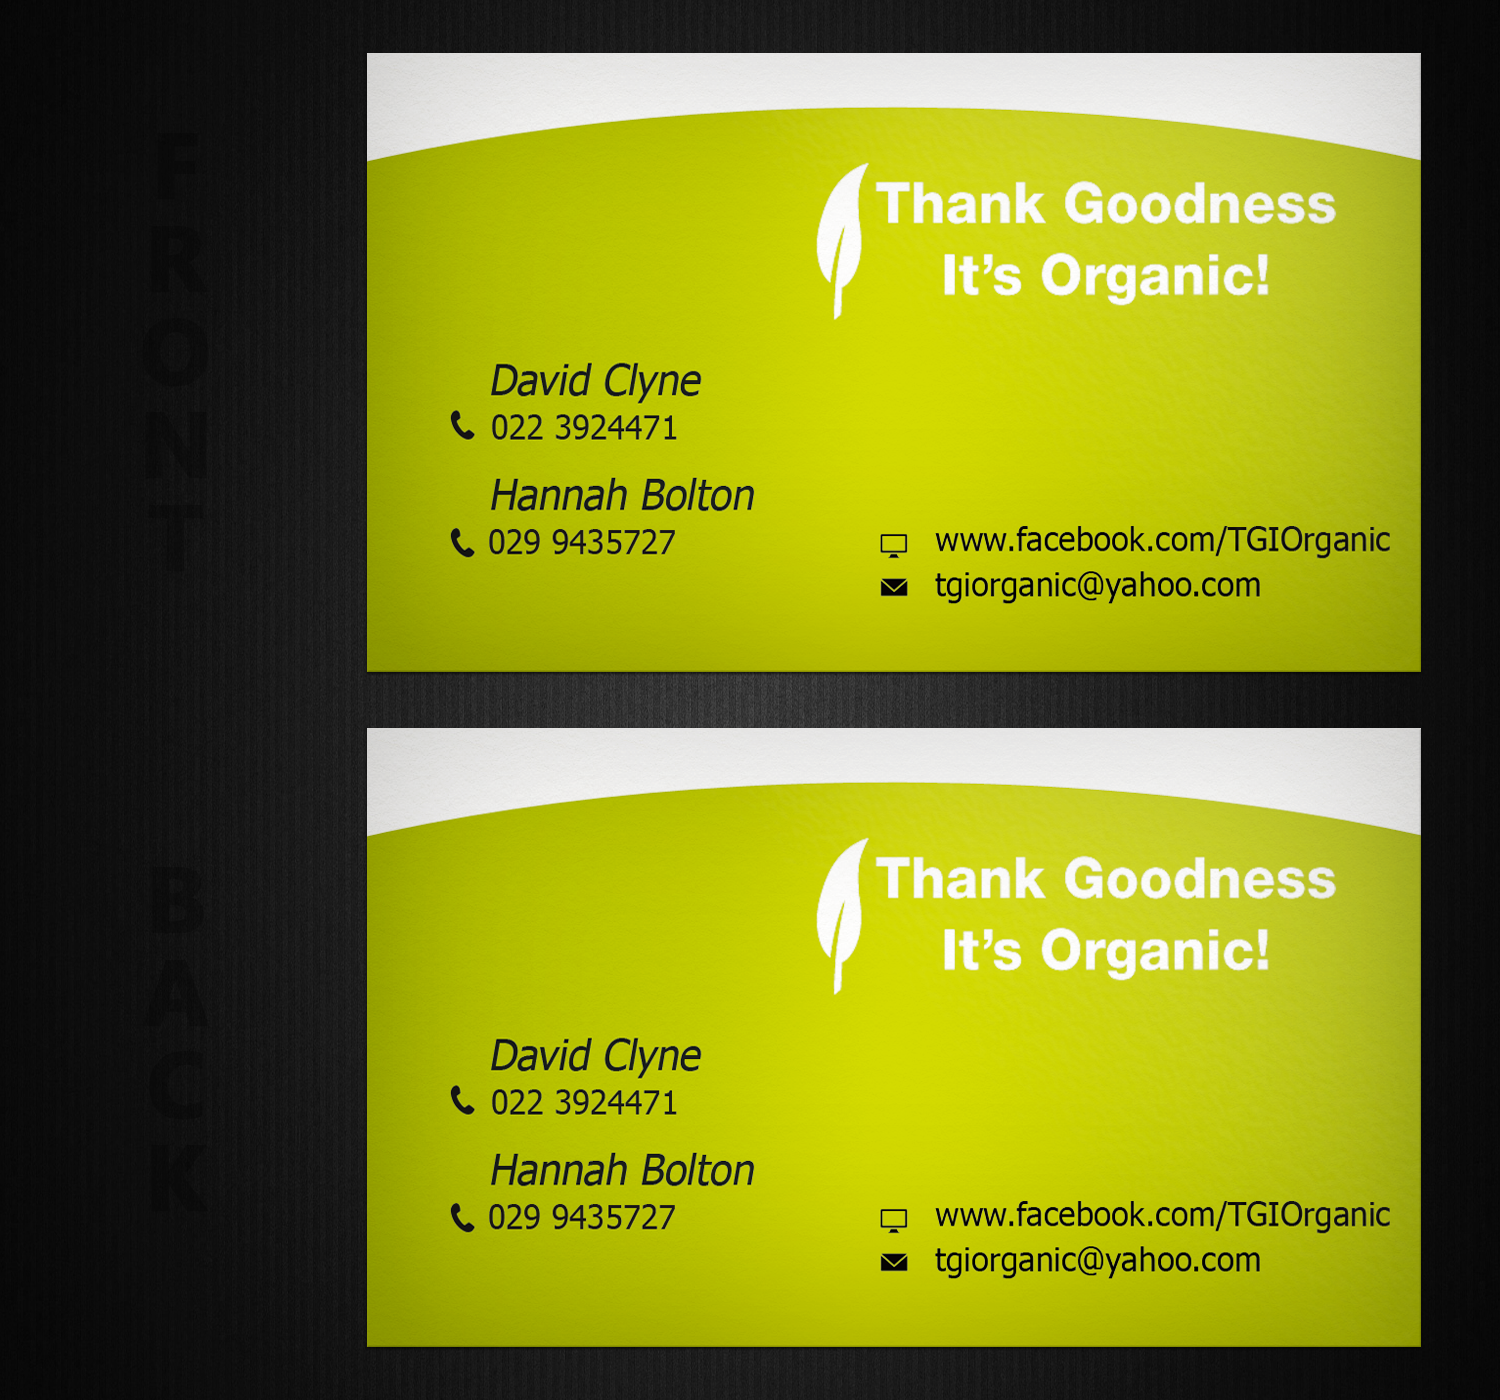 Playful colorful business business card design for thank goodness business card design by creation lanka for thank goodness its organic reheart